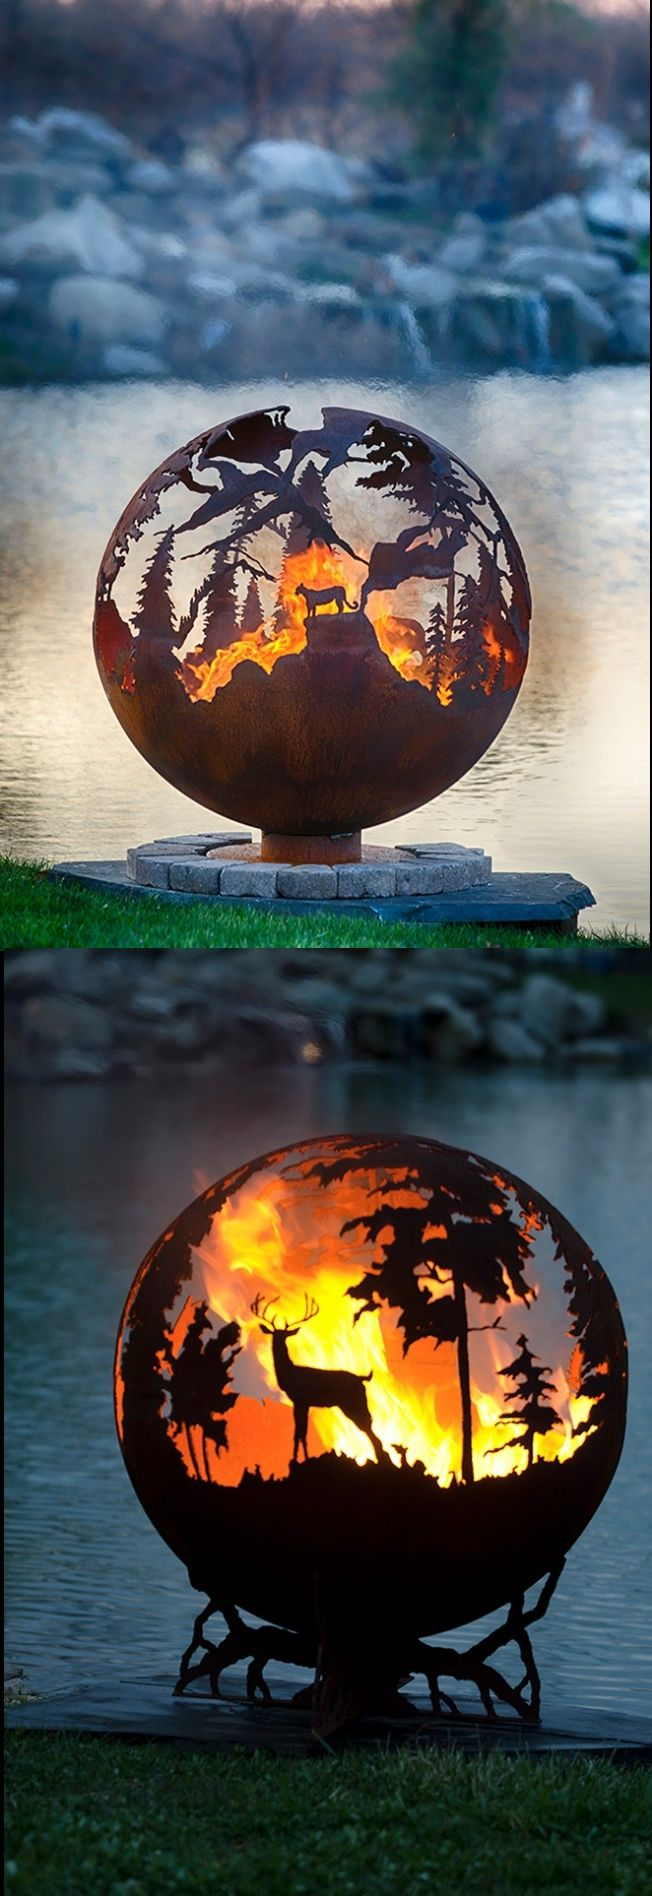 Third Rock Fire Pit - Fire Pit Globe... Each wood and gas fire pit is carefully designed by artist Melissa Crisp and guaranteed to be one of a kind. • The Fire Pit Gallery - Fire Pits for Sale https://www.thefirepitgallery.com/